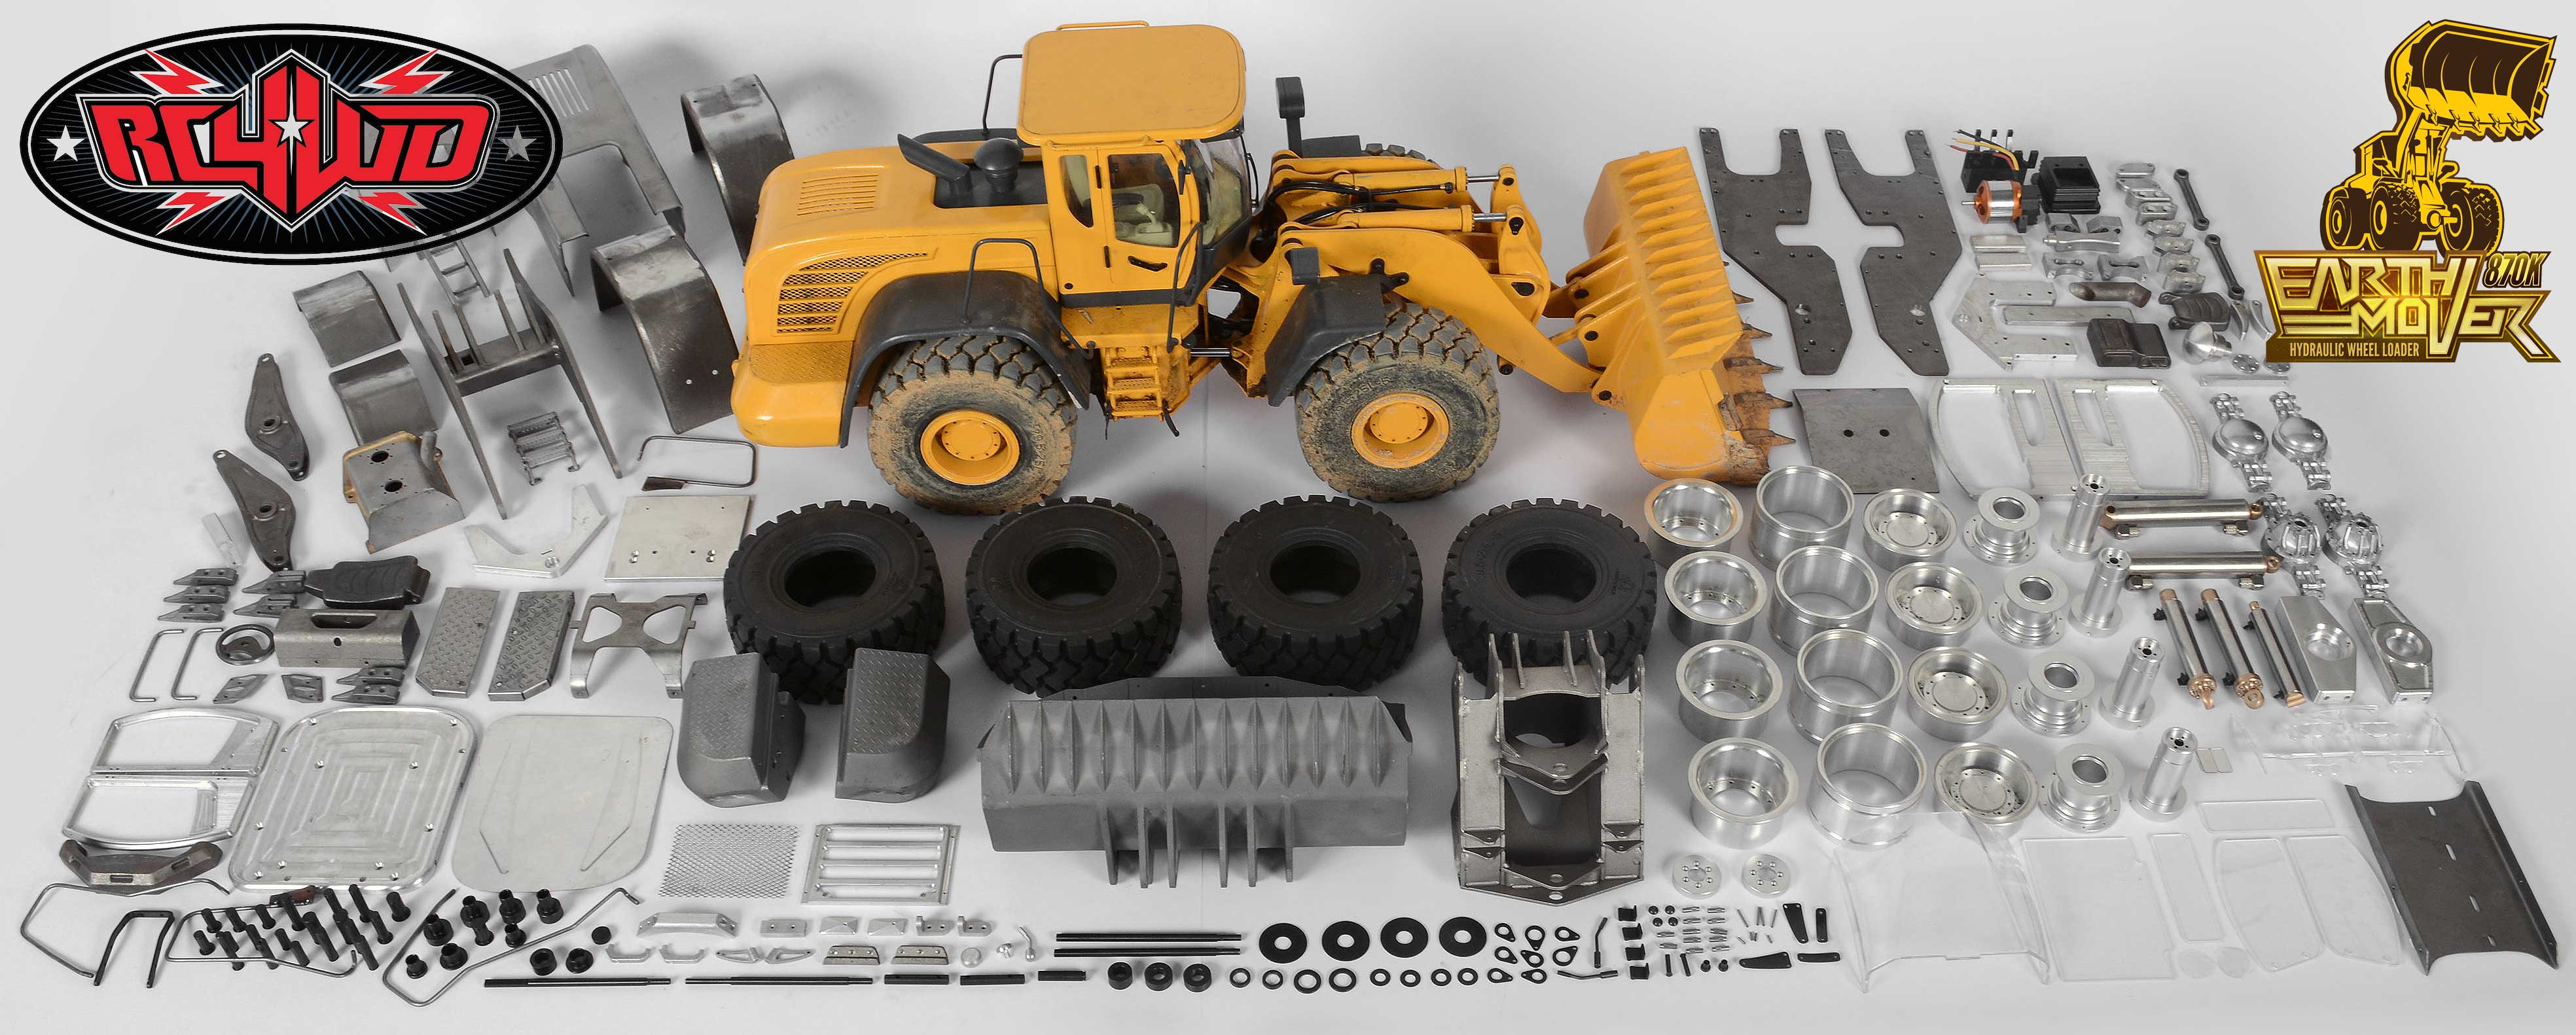 Rc4wd Vvjd00013 1 14 Scale Earth Mover 870k Hydraulic Wheel Loader Rc Car Wiring Diagram Rc8 2e Vv Jd00013